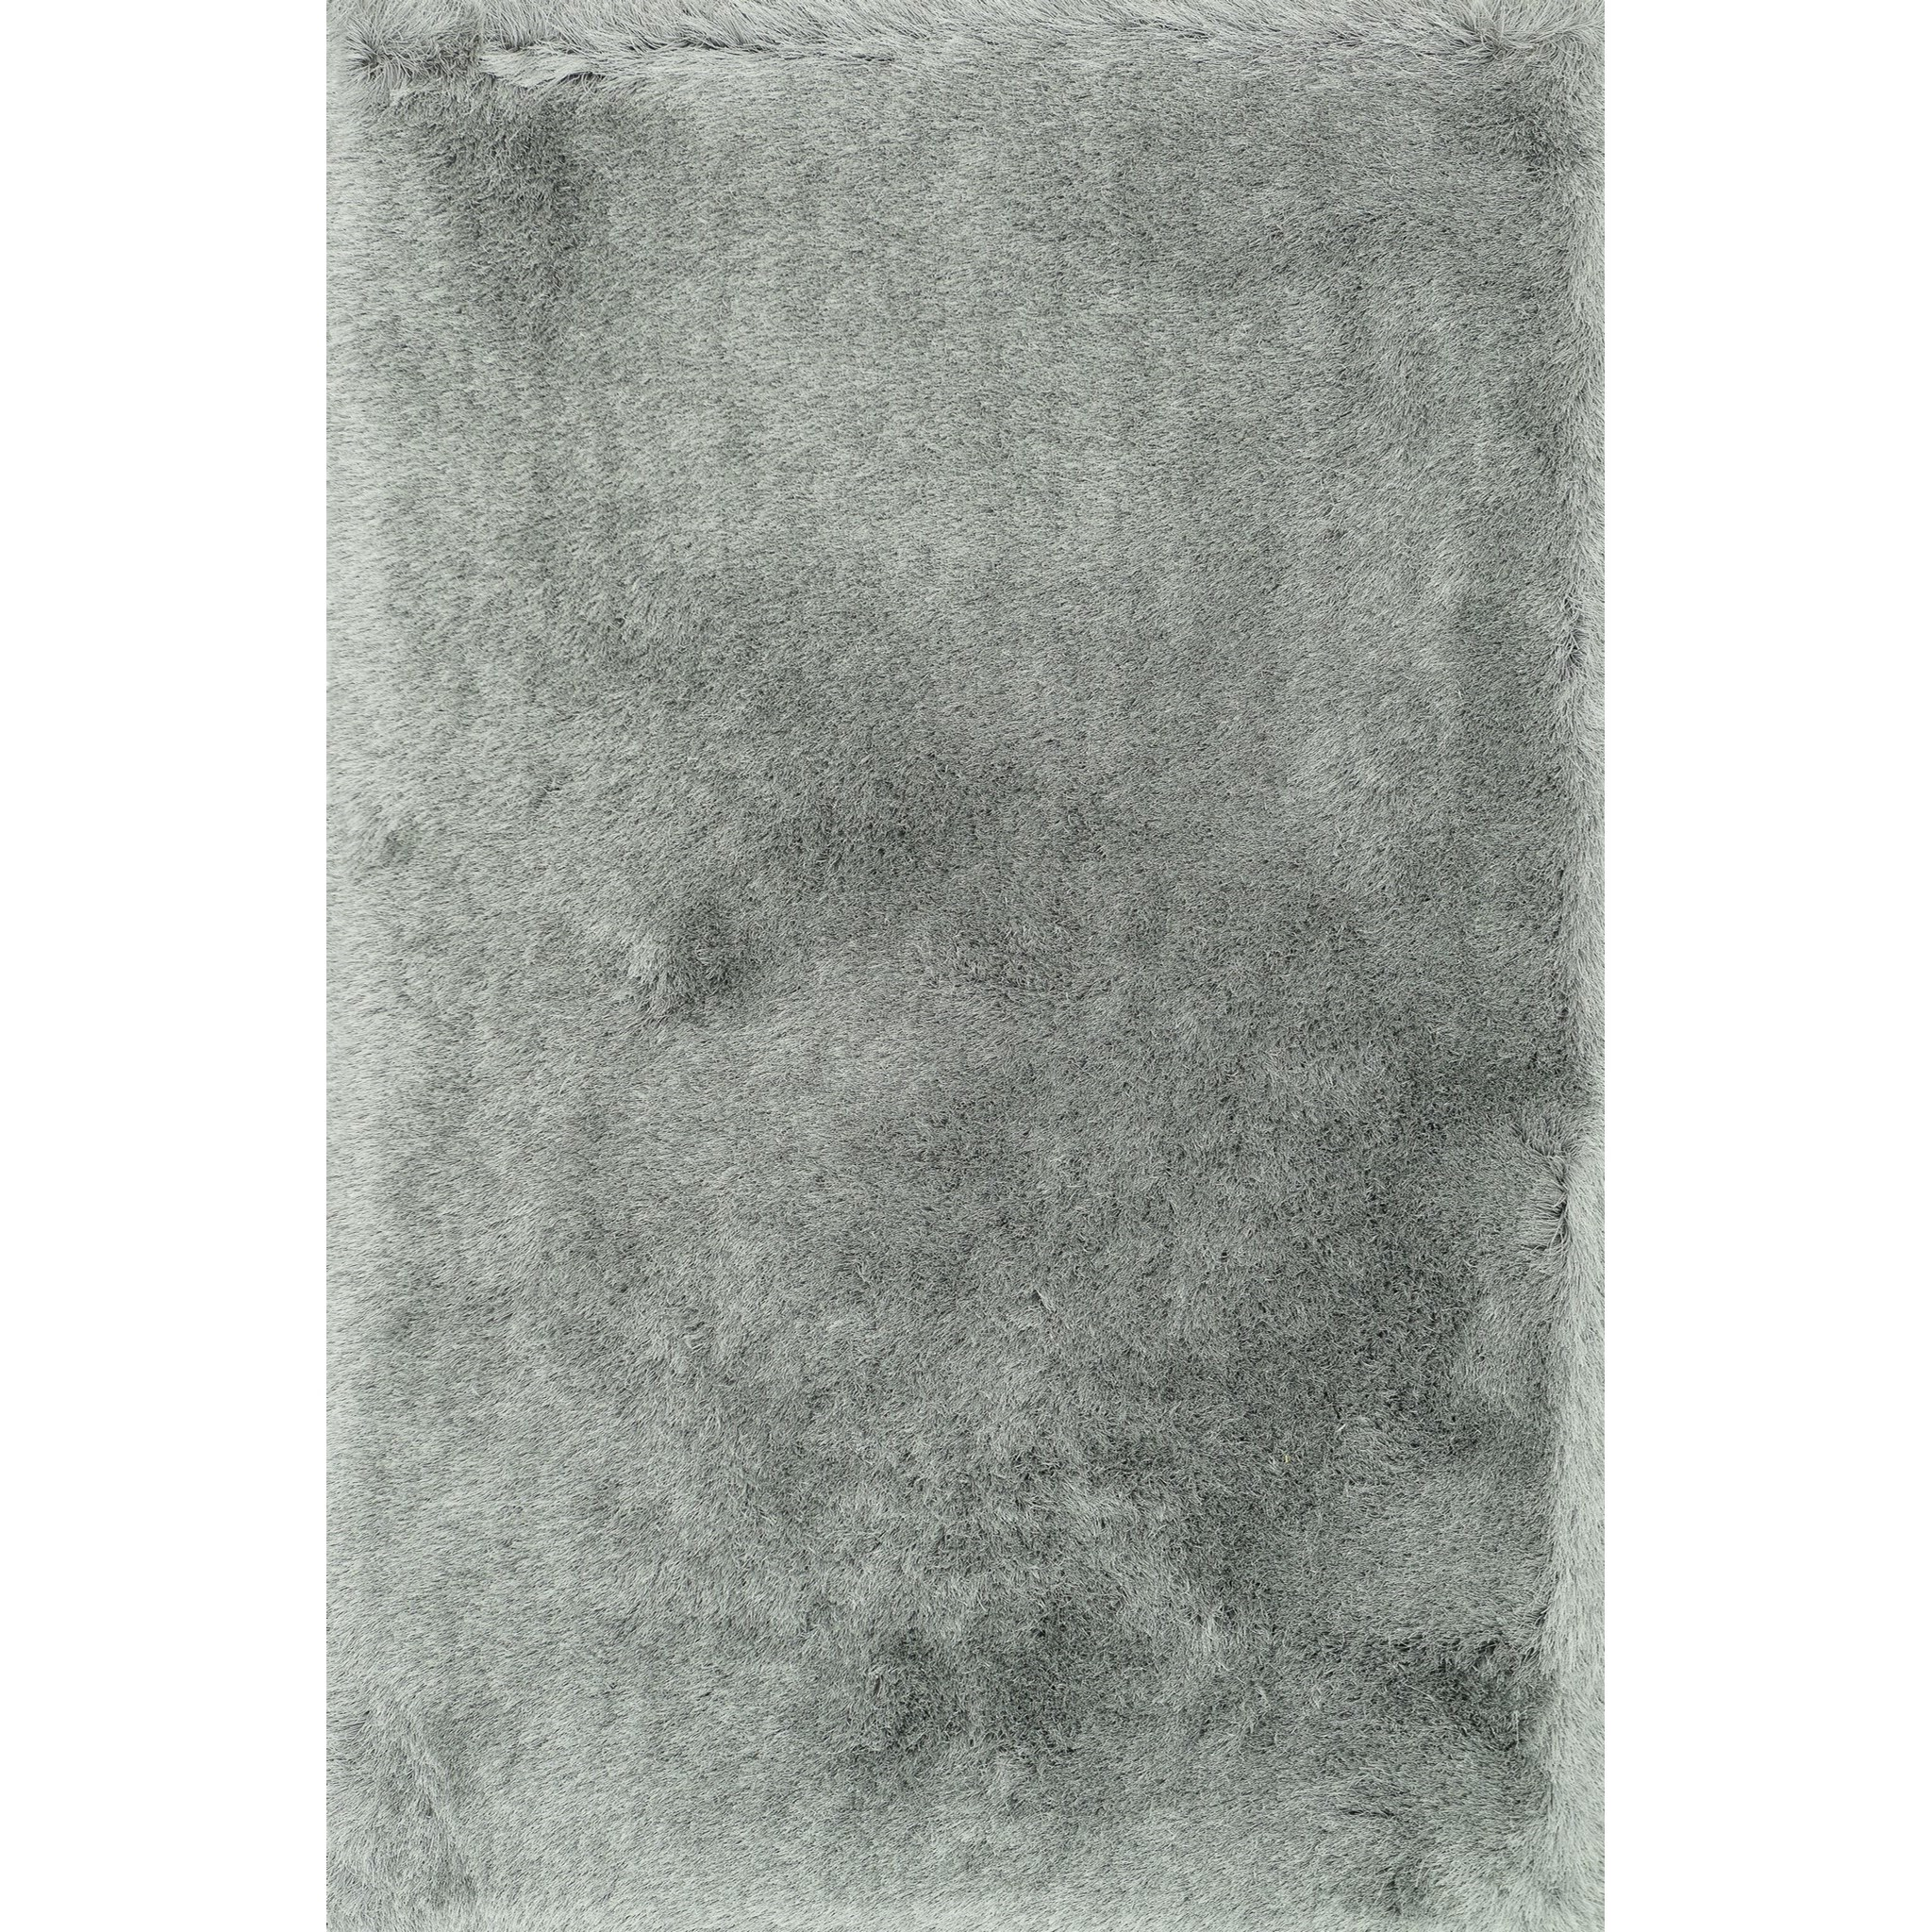 "Allure Shag 9'-3"" X 13' Area Rug by Loloi Rugs at Virginia Furniture Market"